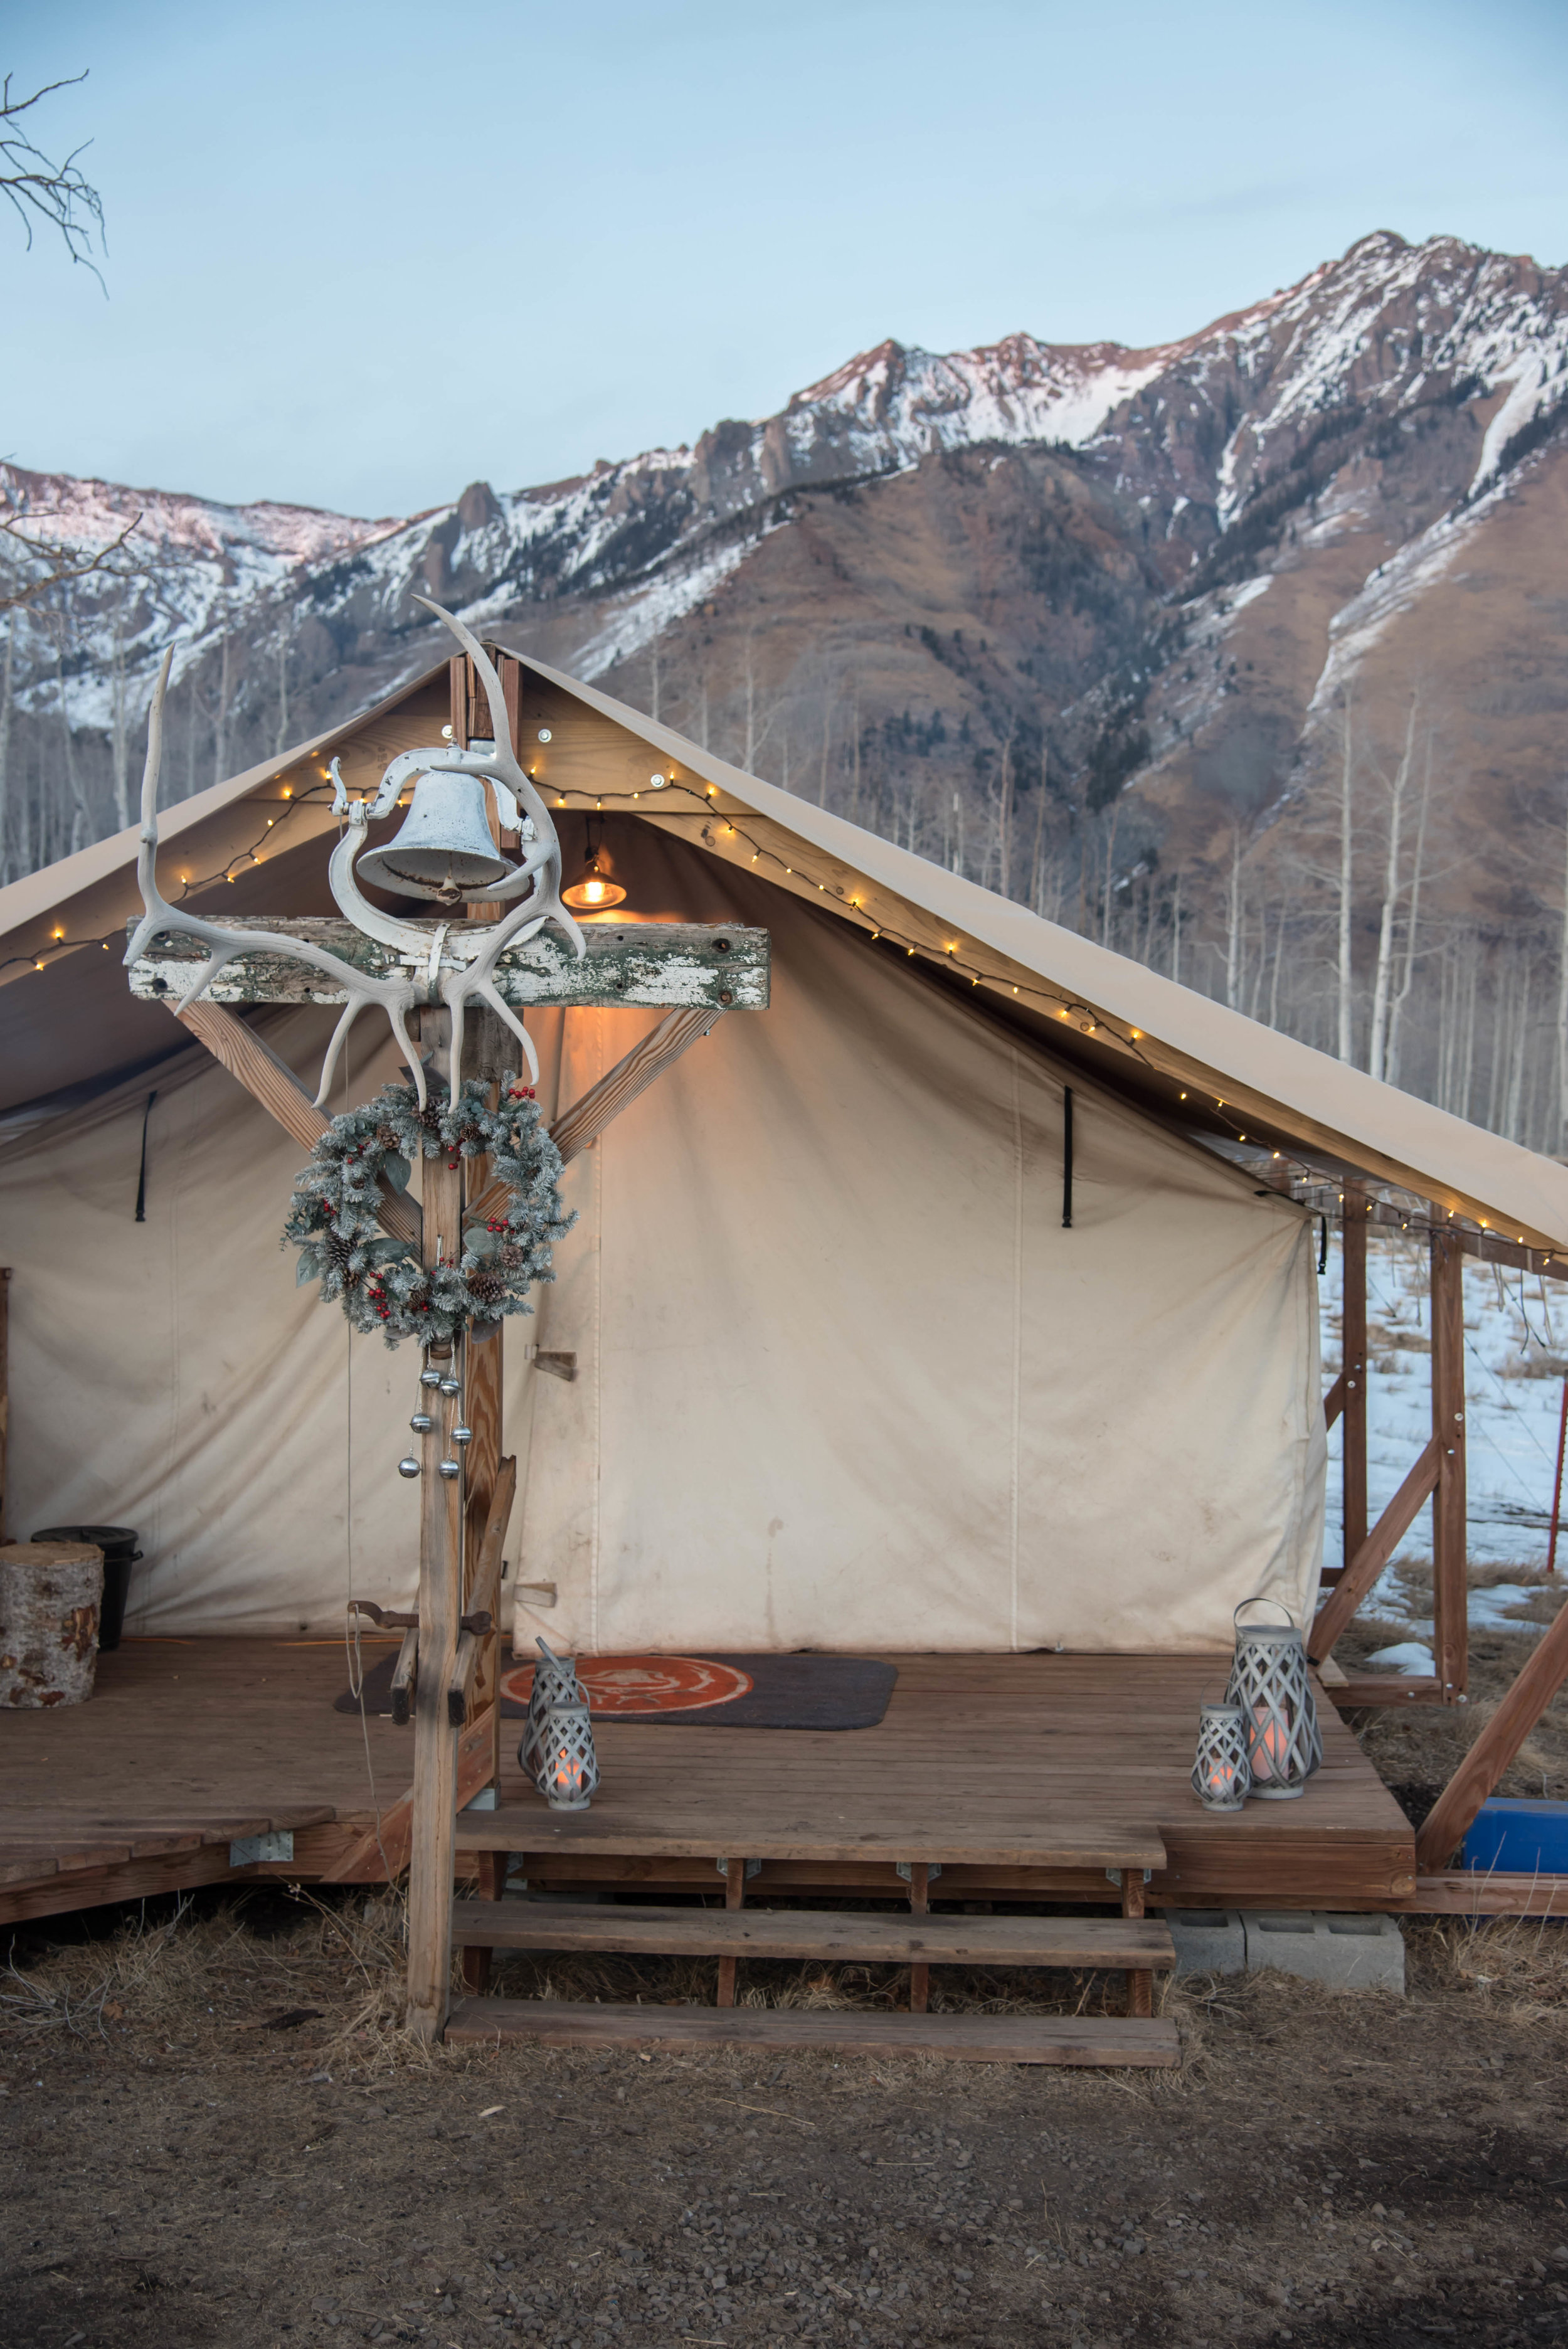 ROSE & IVY Journal Escape to Telluride Telluride Sleighs & Wagons